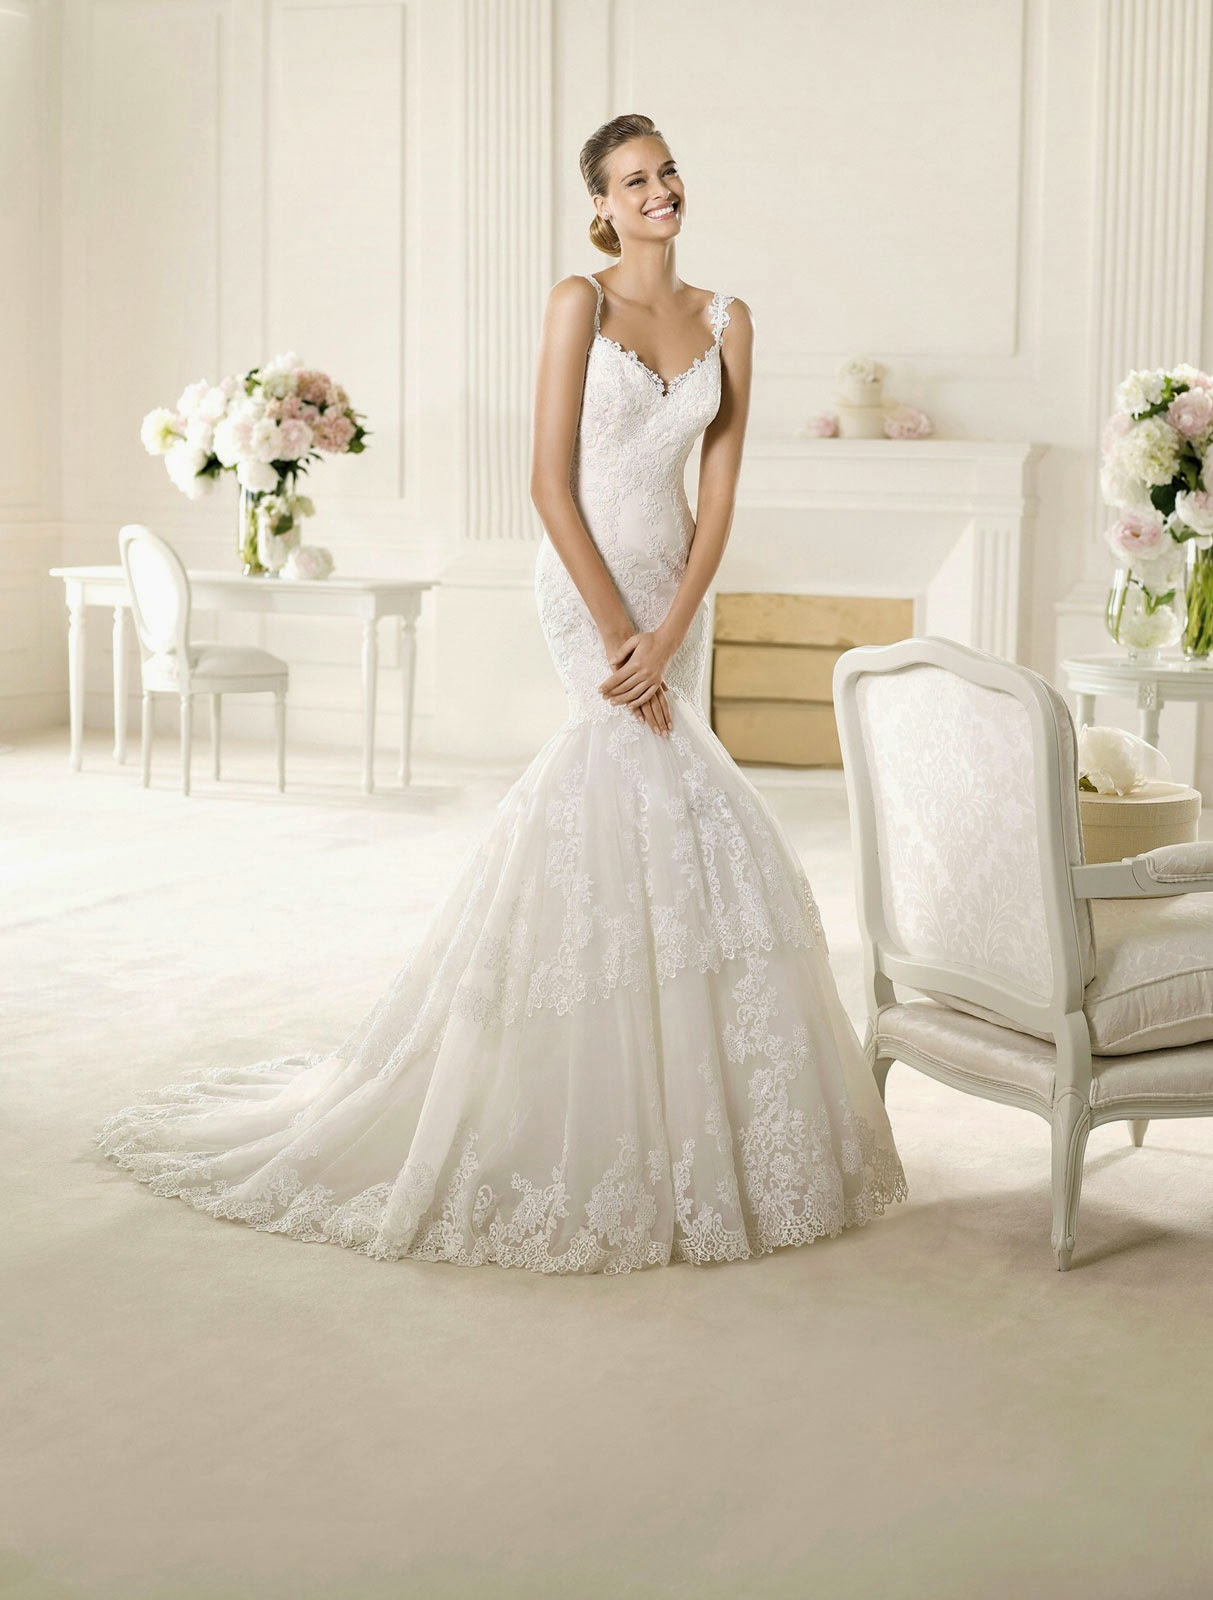 White and Ivory Wedding Dresses With Straps Design Ideas Photos HD